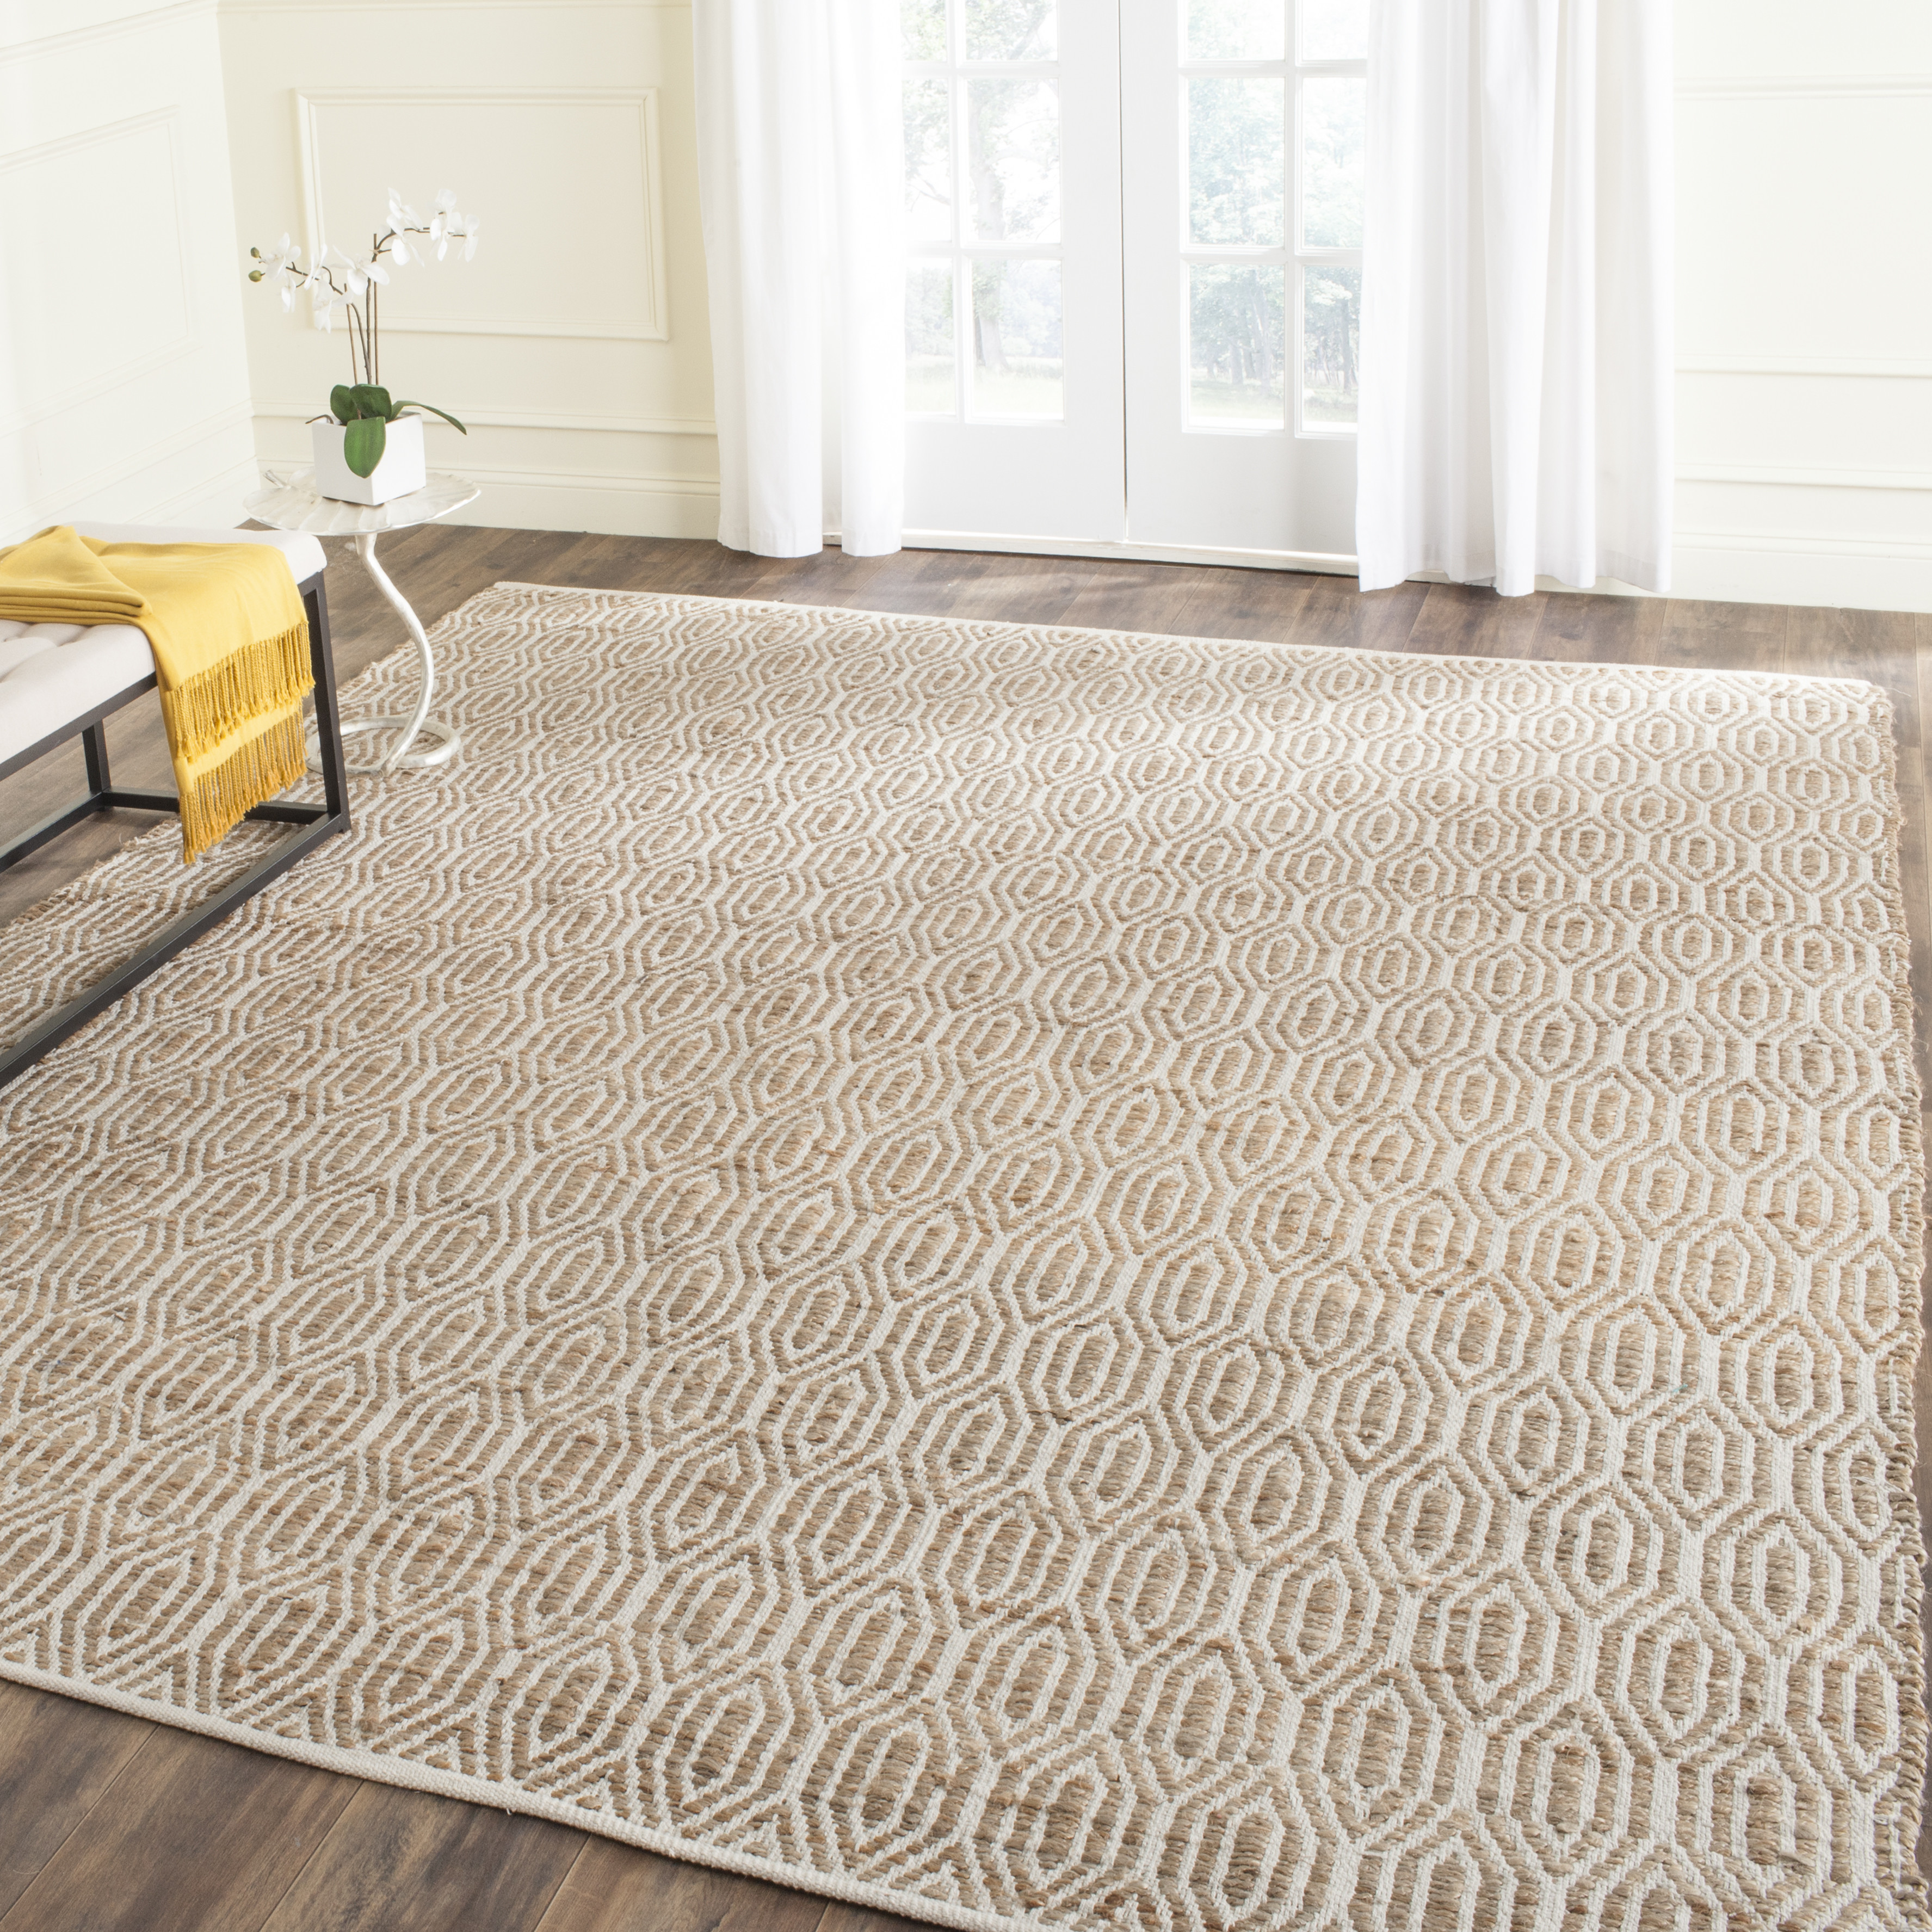 Best Beachcrest Homeu0026trade; Gilchrist Hand-Woven Natural Area Rug natural area rugs